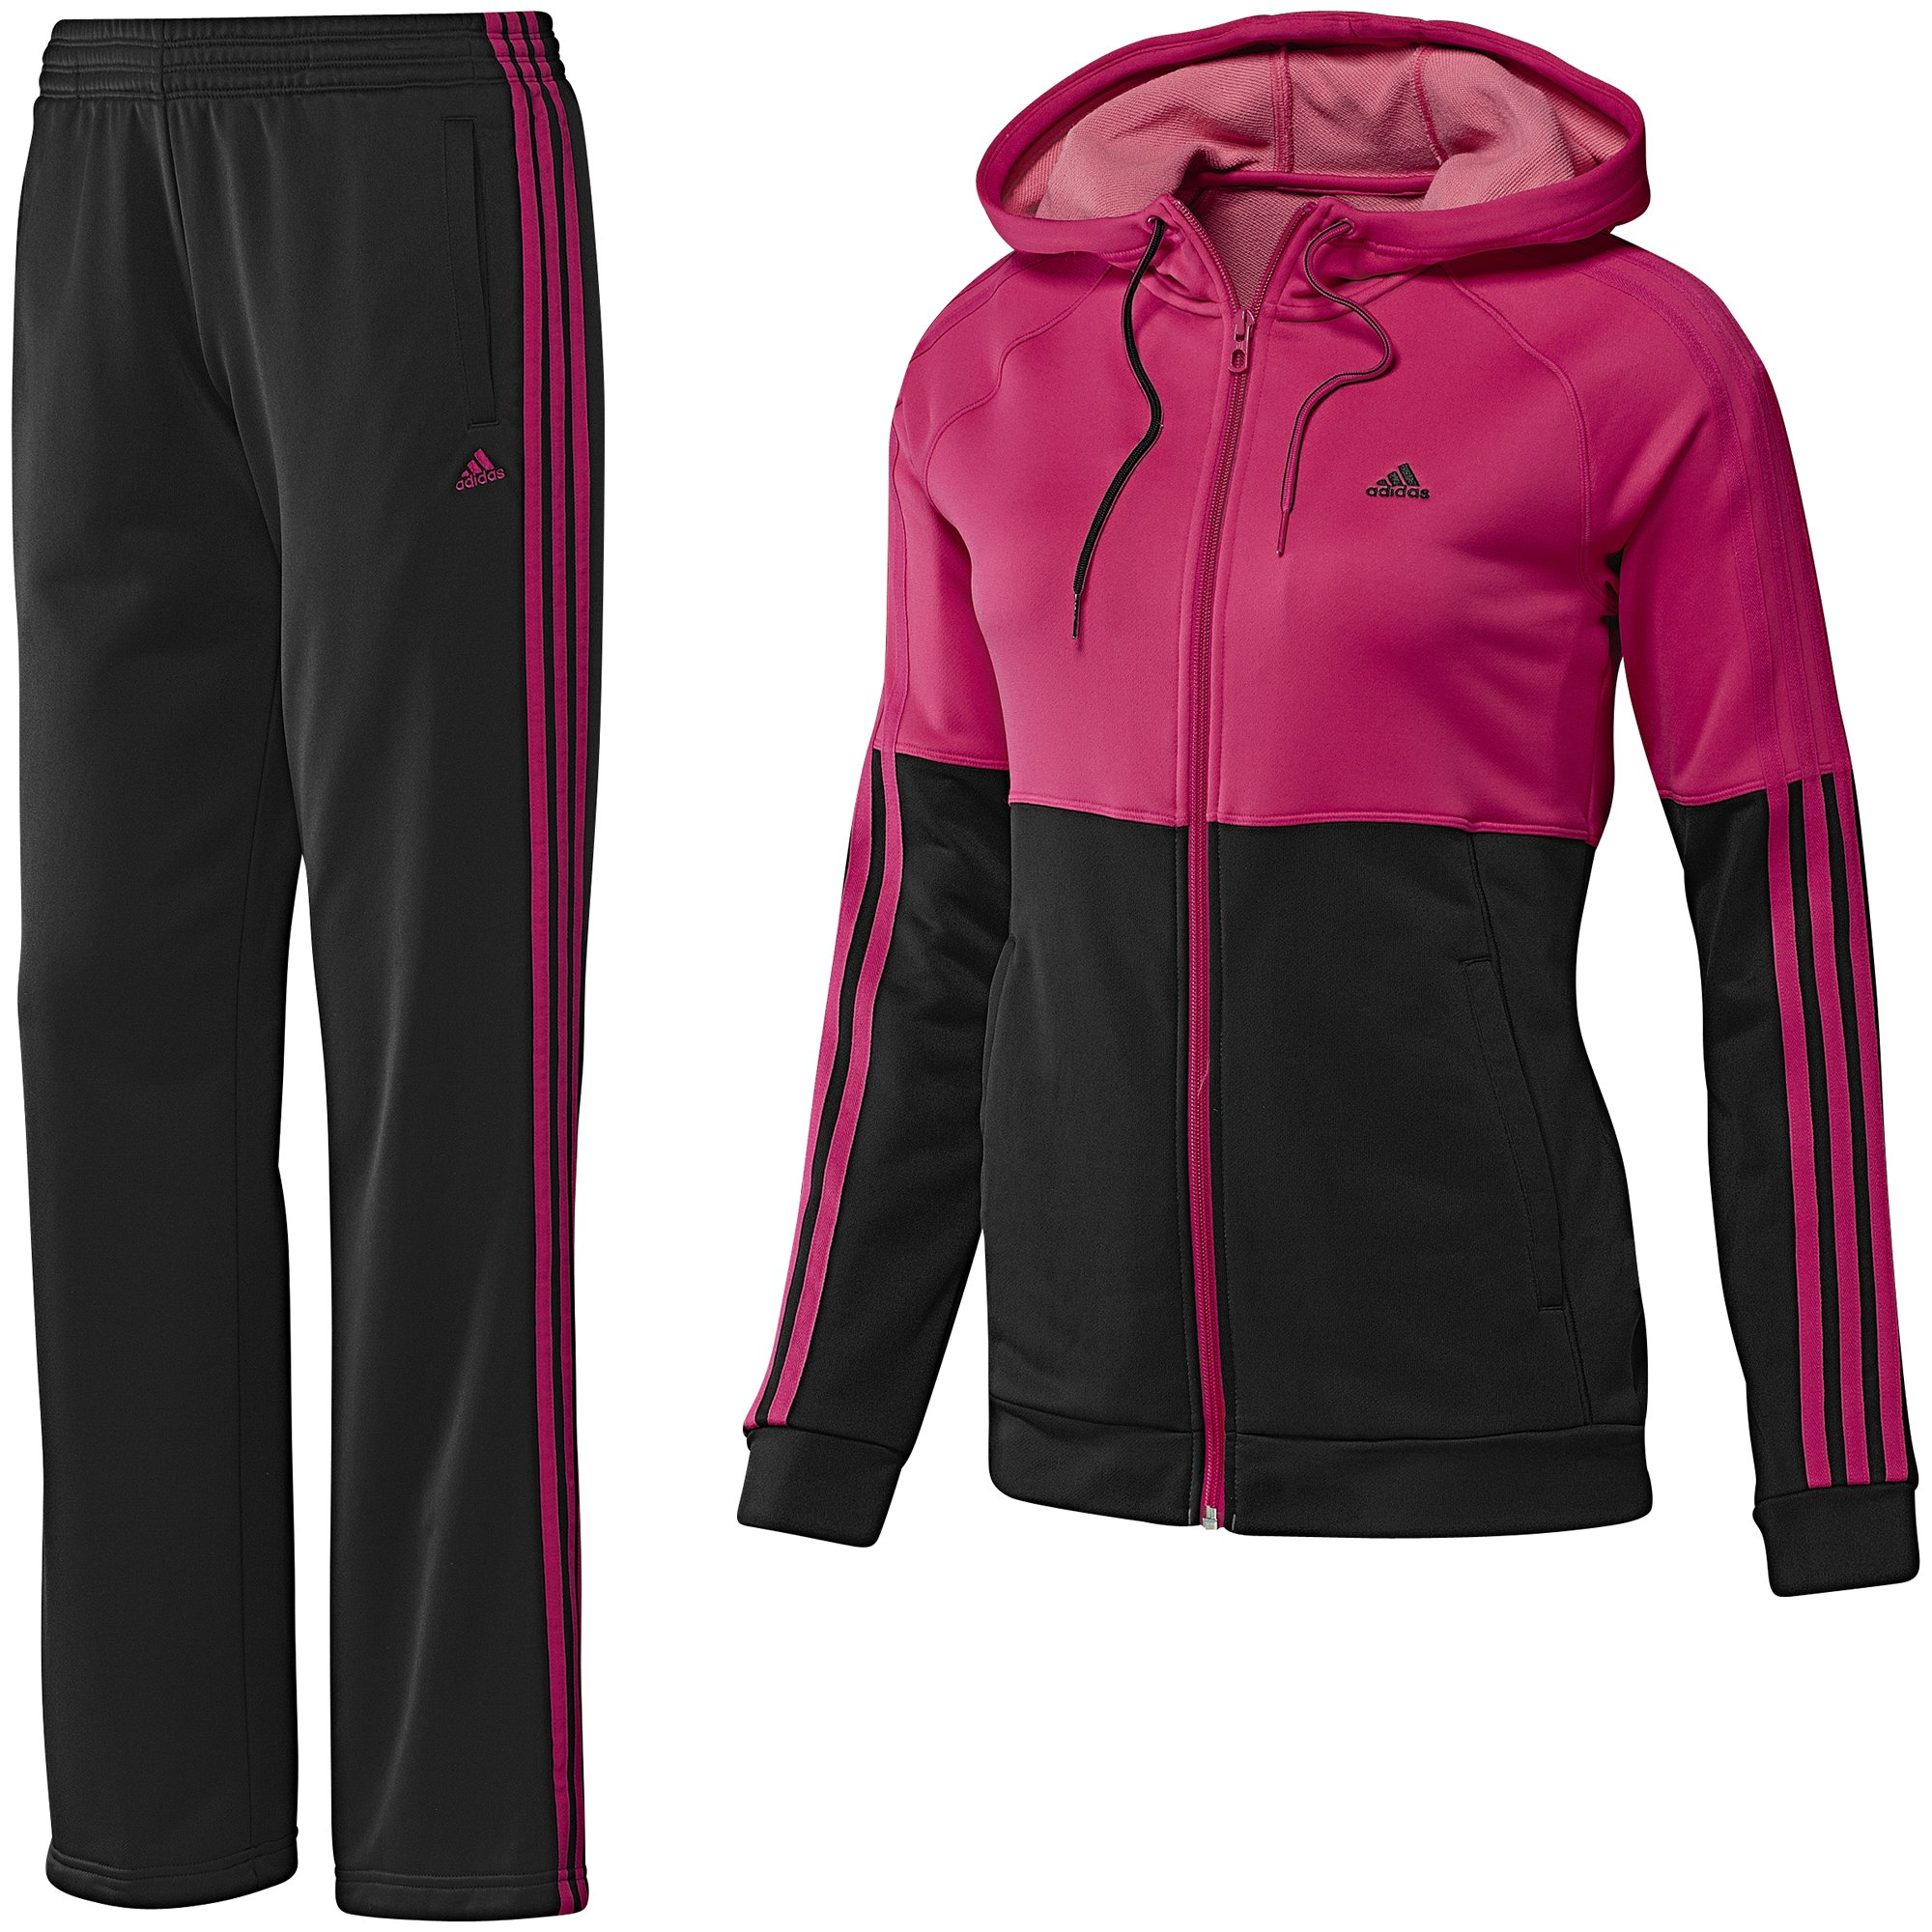 adidas damen trainingsanzug young knit suit ebay. Black Bedroom Furniture Sets. Home Design Ideas